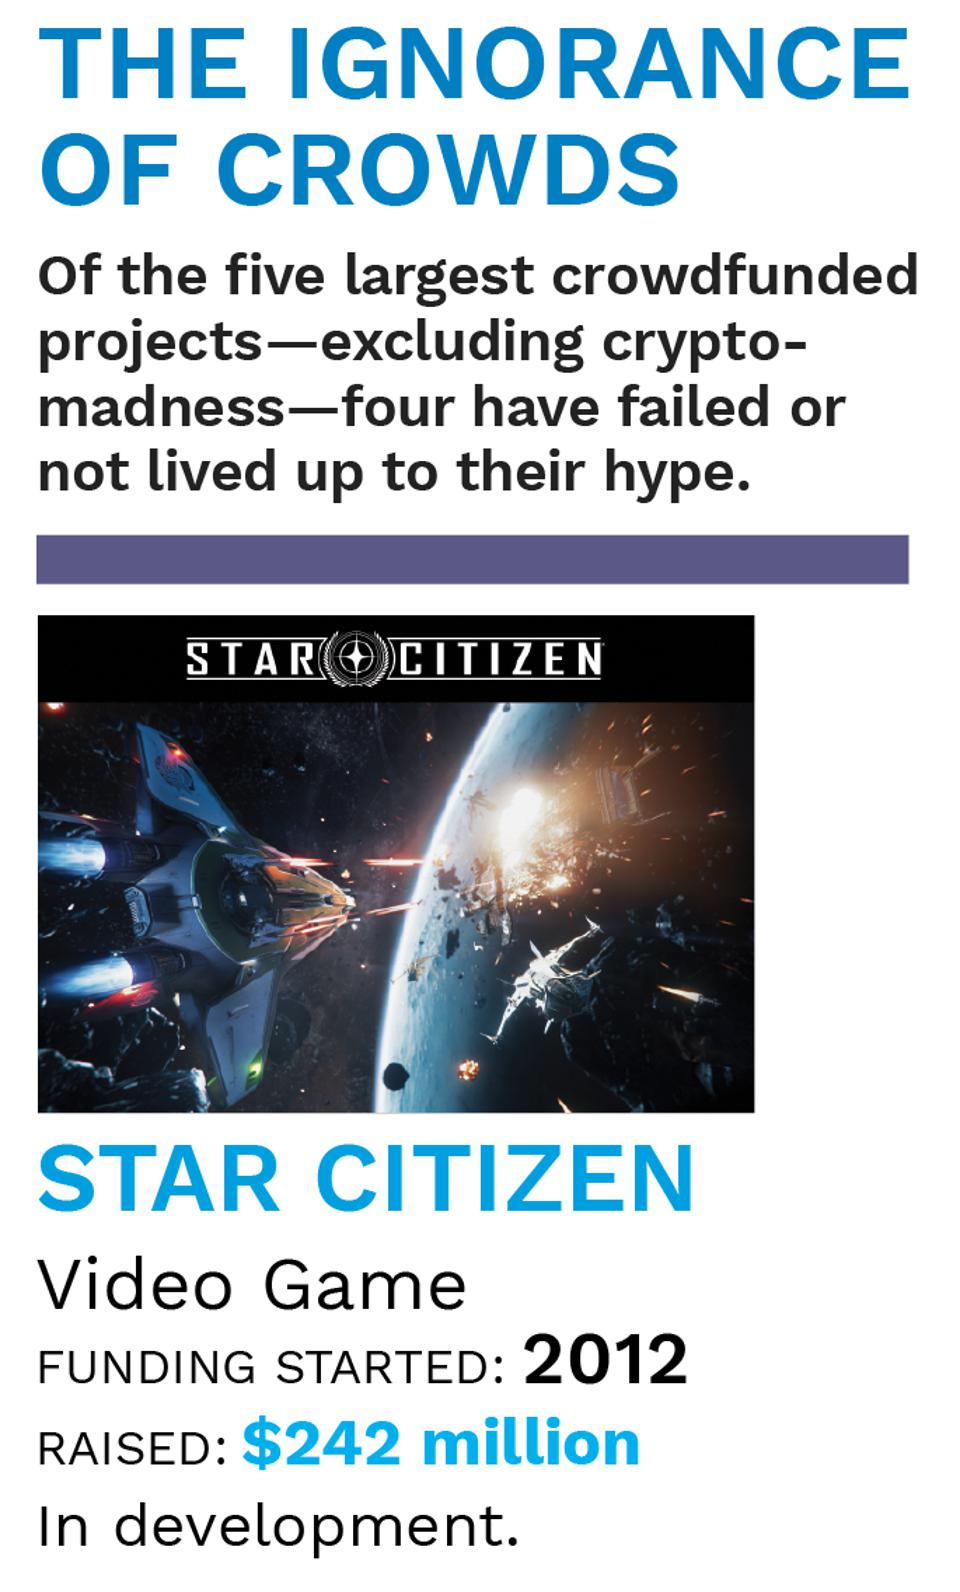 Exclusive The Saga Of Star Citizen A Video Game That Raised 300 Million But May Never Be Ready To Play